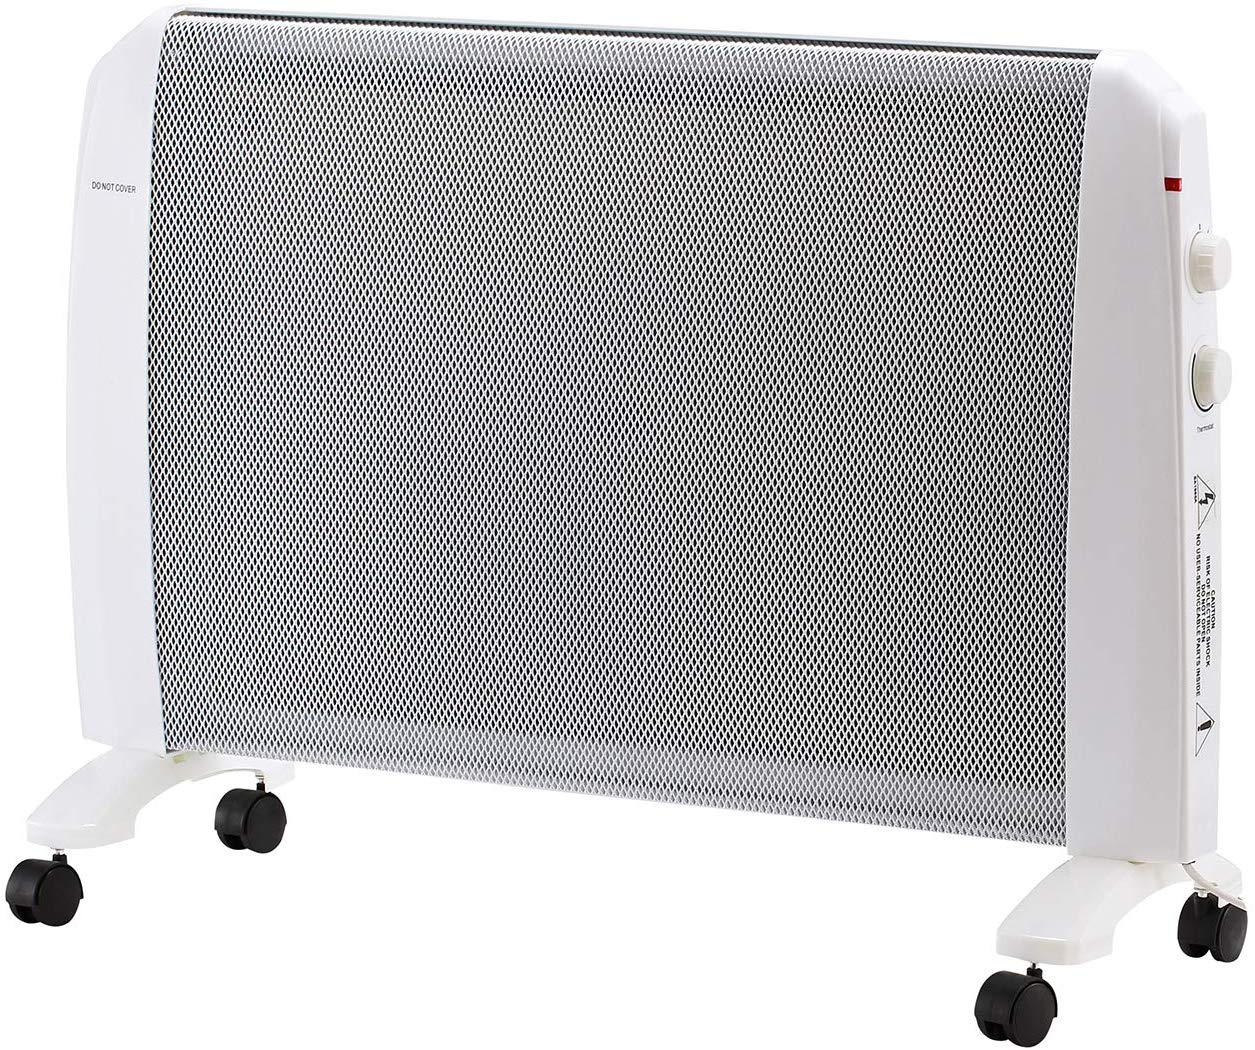 4 Different Types of Space Heaters (with Pictures) - HVAC